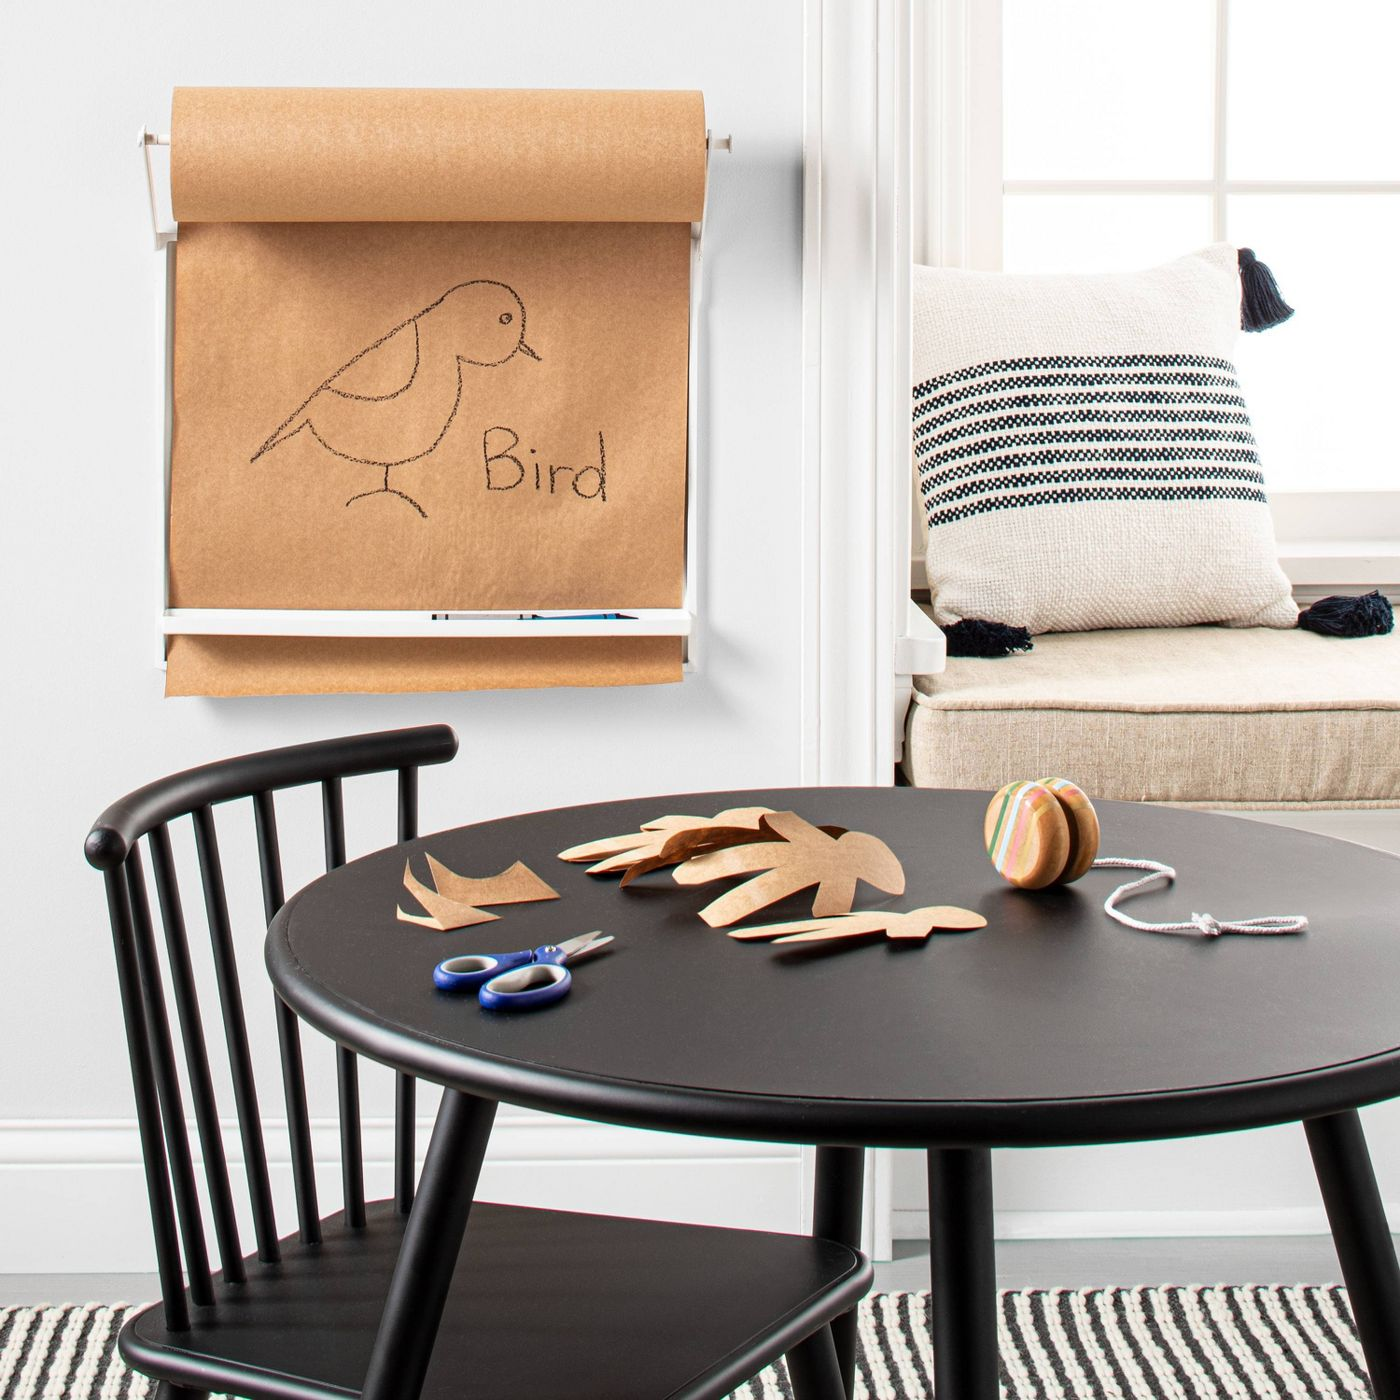 Hearth & Hand with Magnolia Wall-mounted Paper Roll Holder